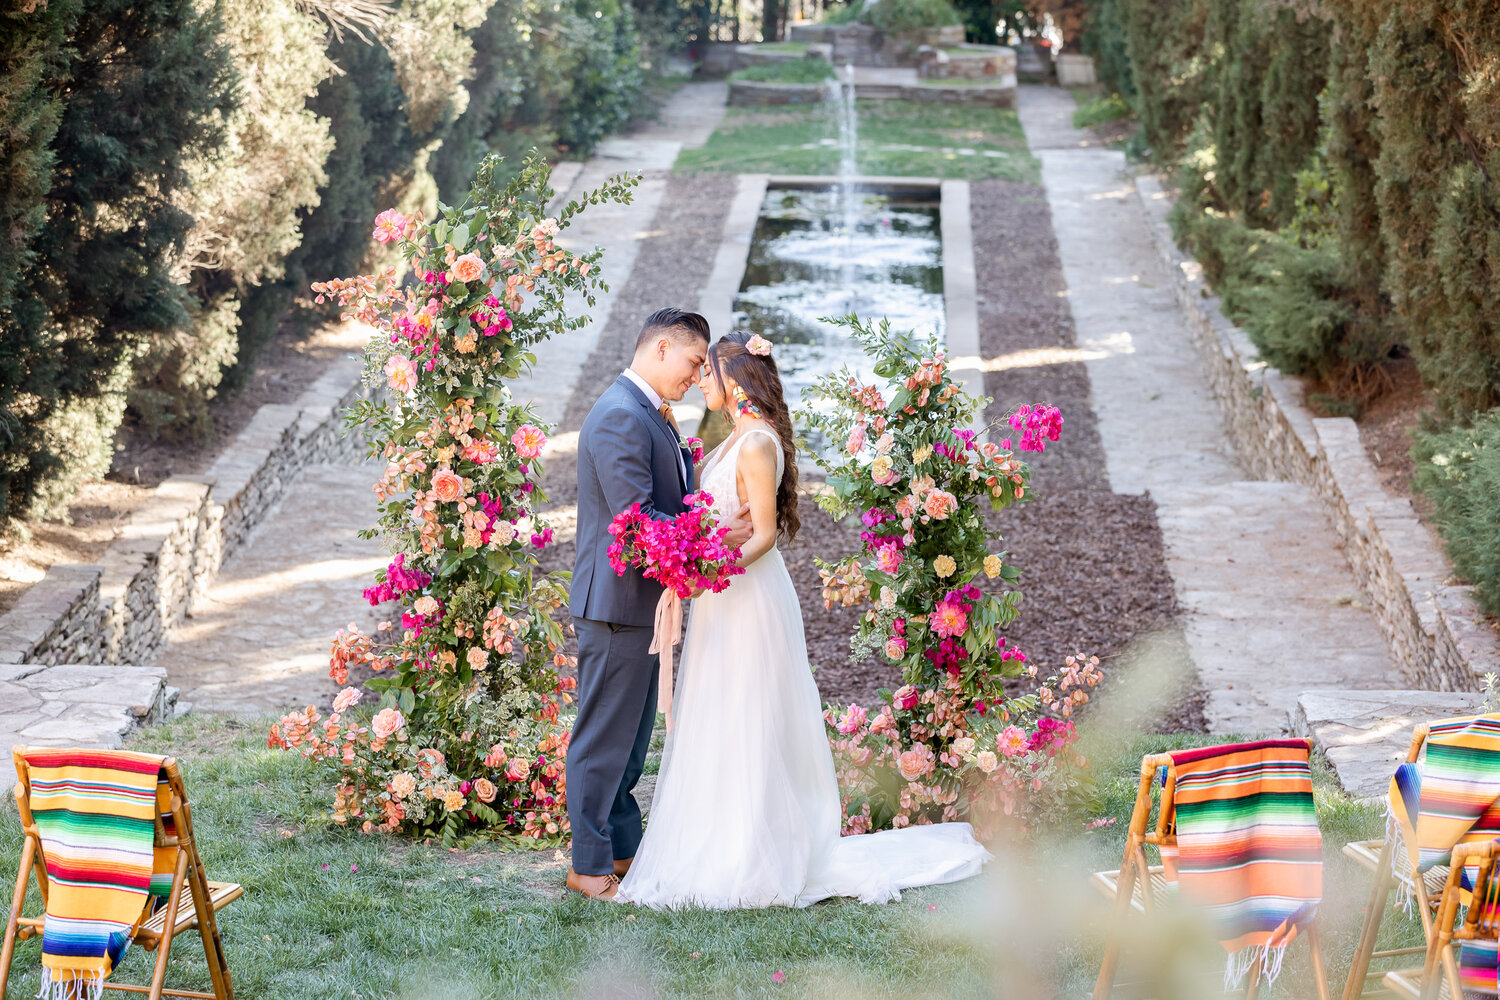 h & l lovely creations bespoke weddings southern california colourful 00010